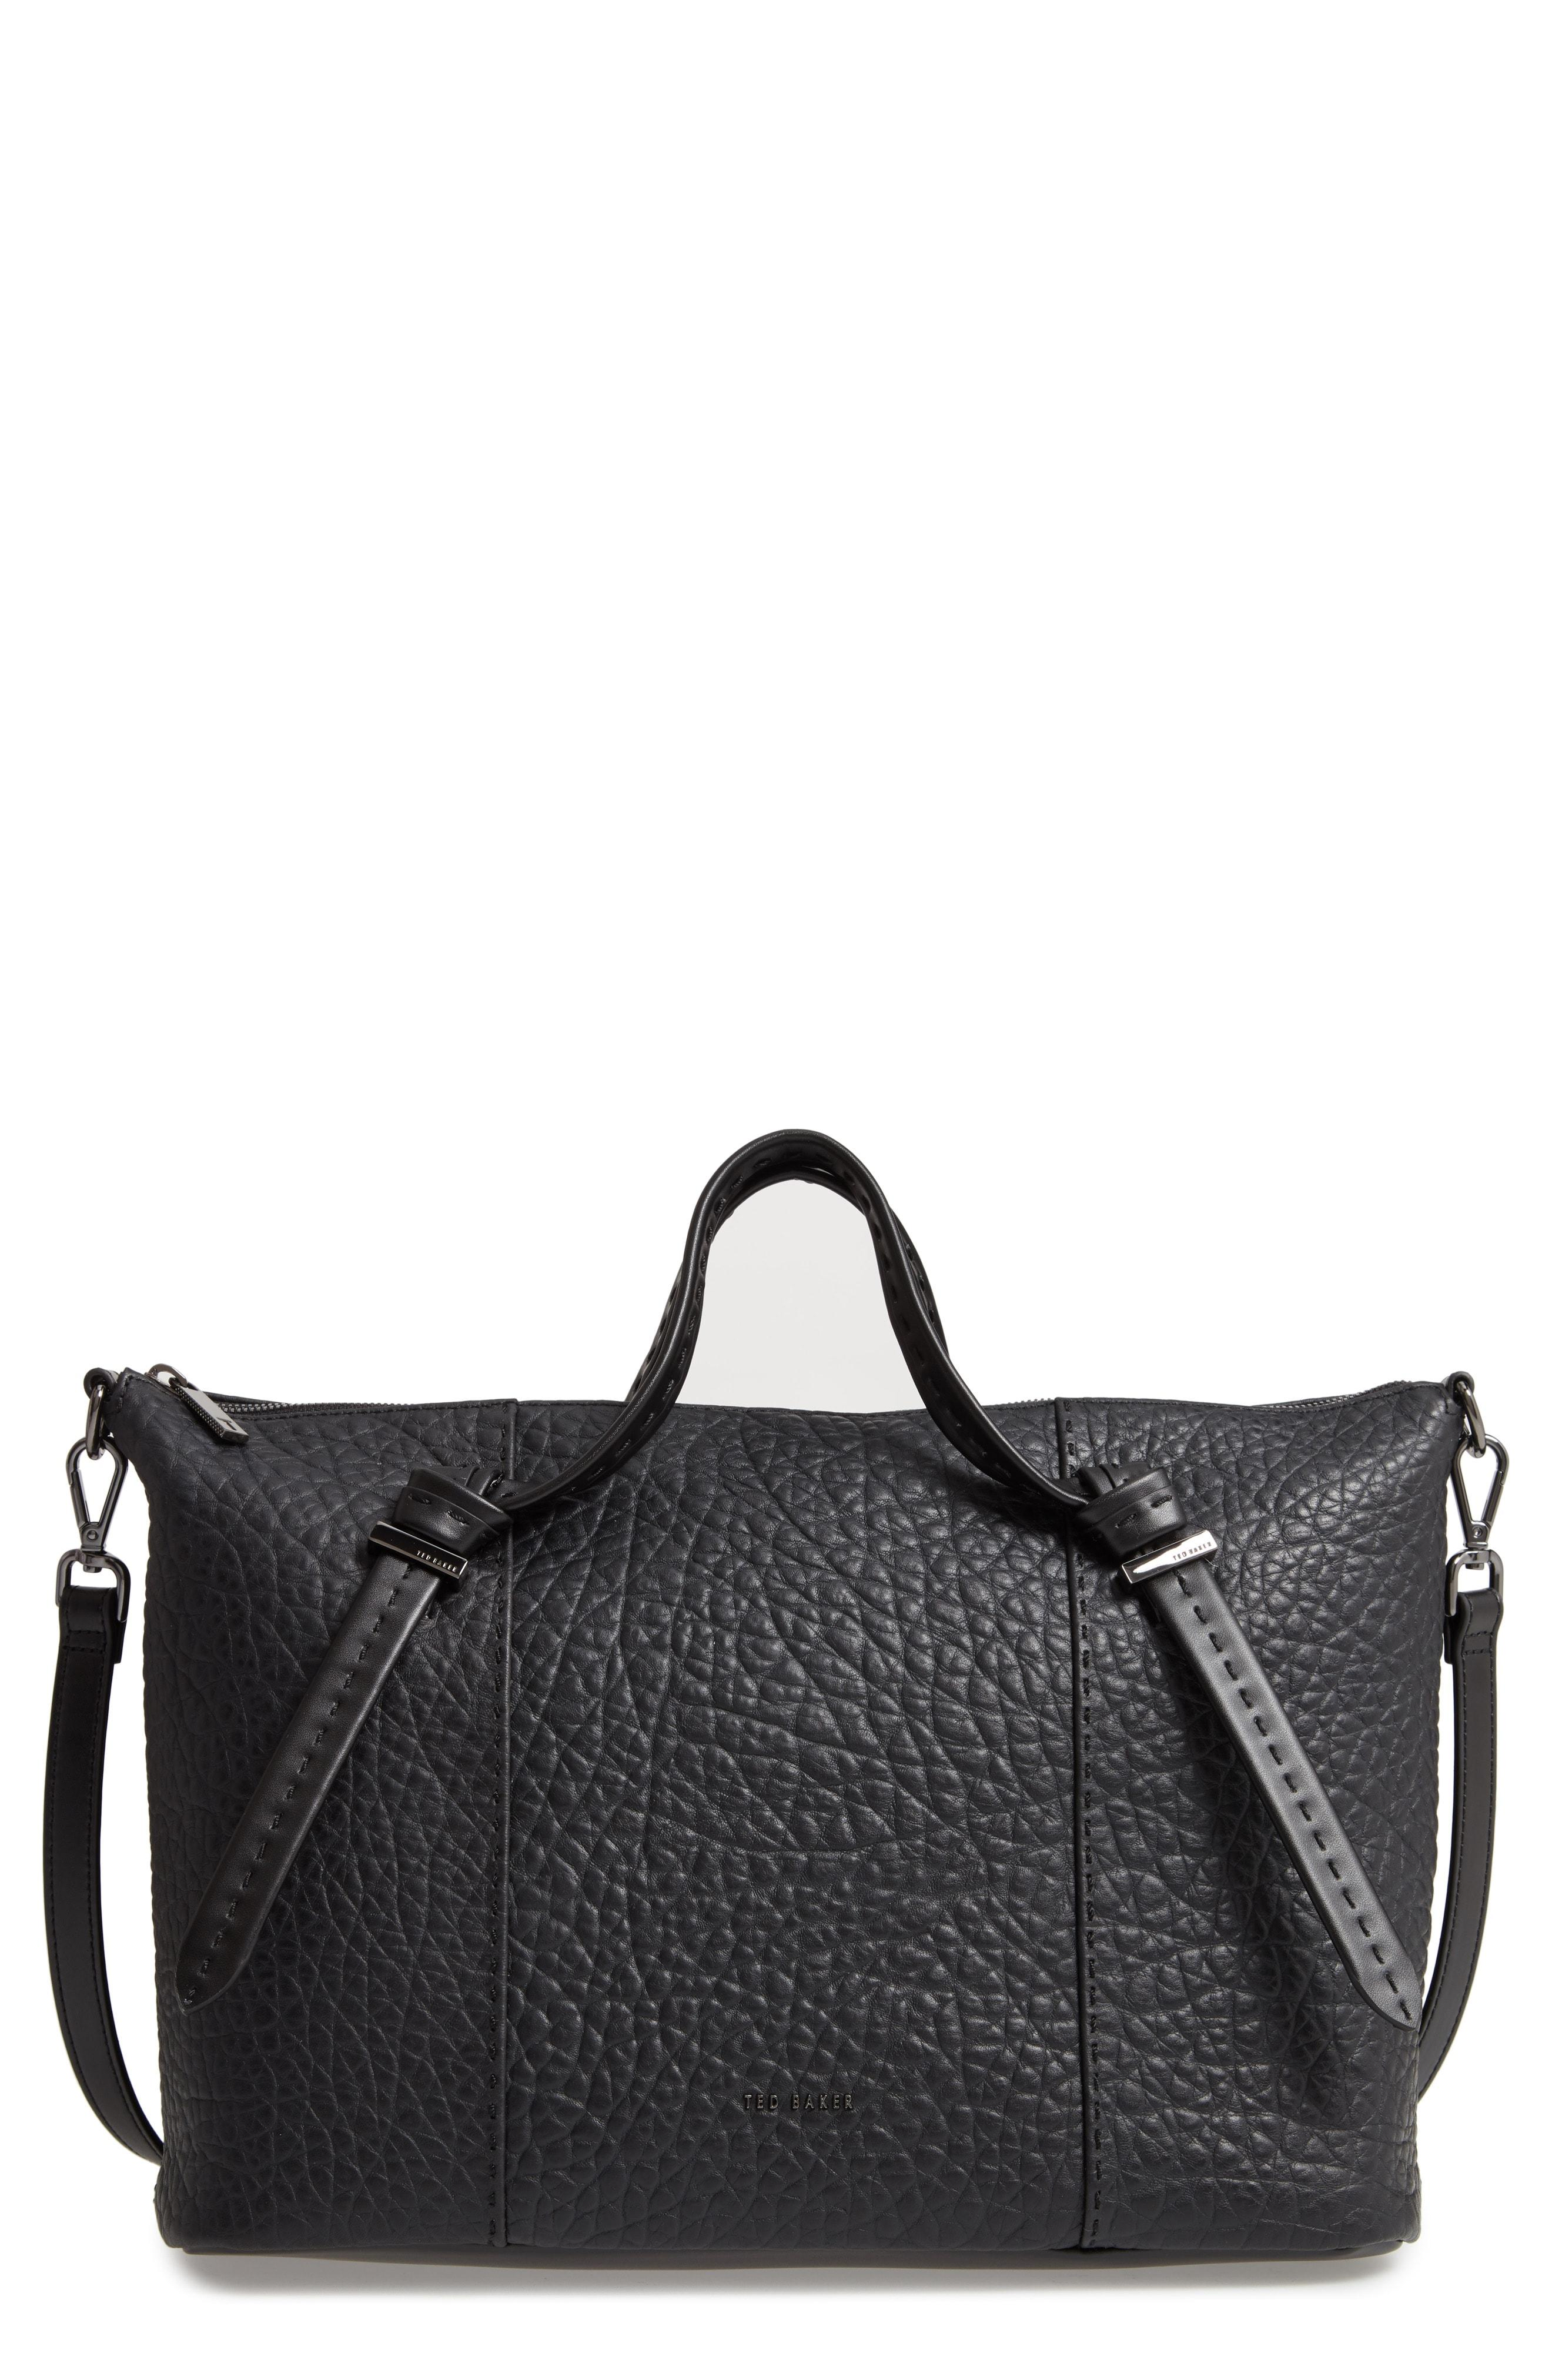 2c5012aecff372 Lyst - Ted Baker Oellie Large Leather Tote - in Black